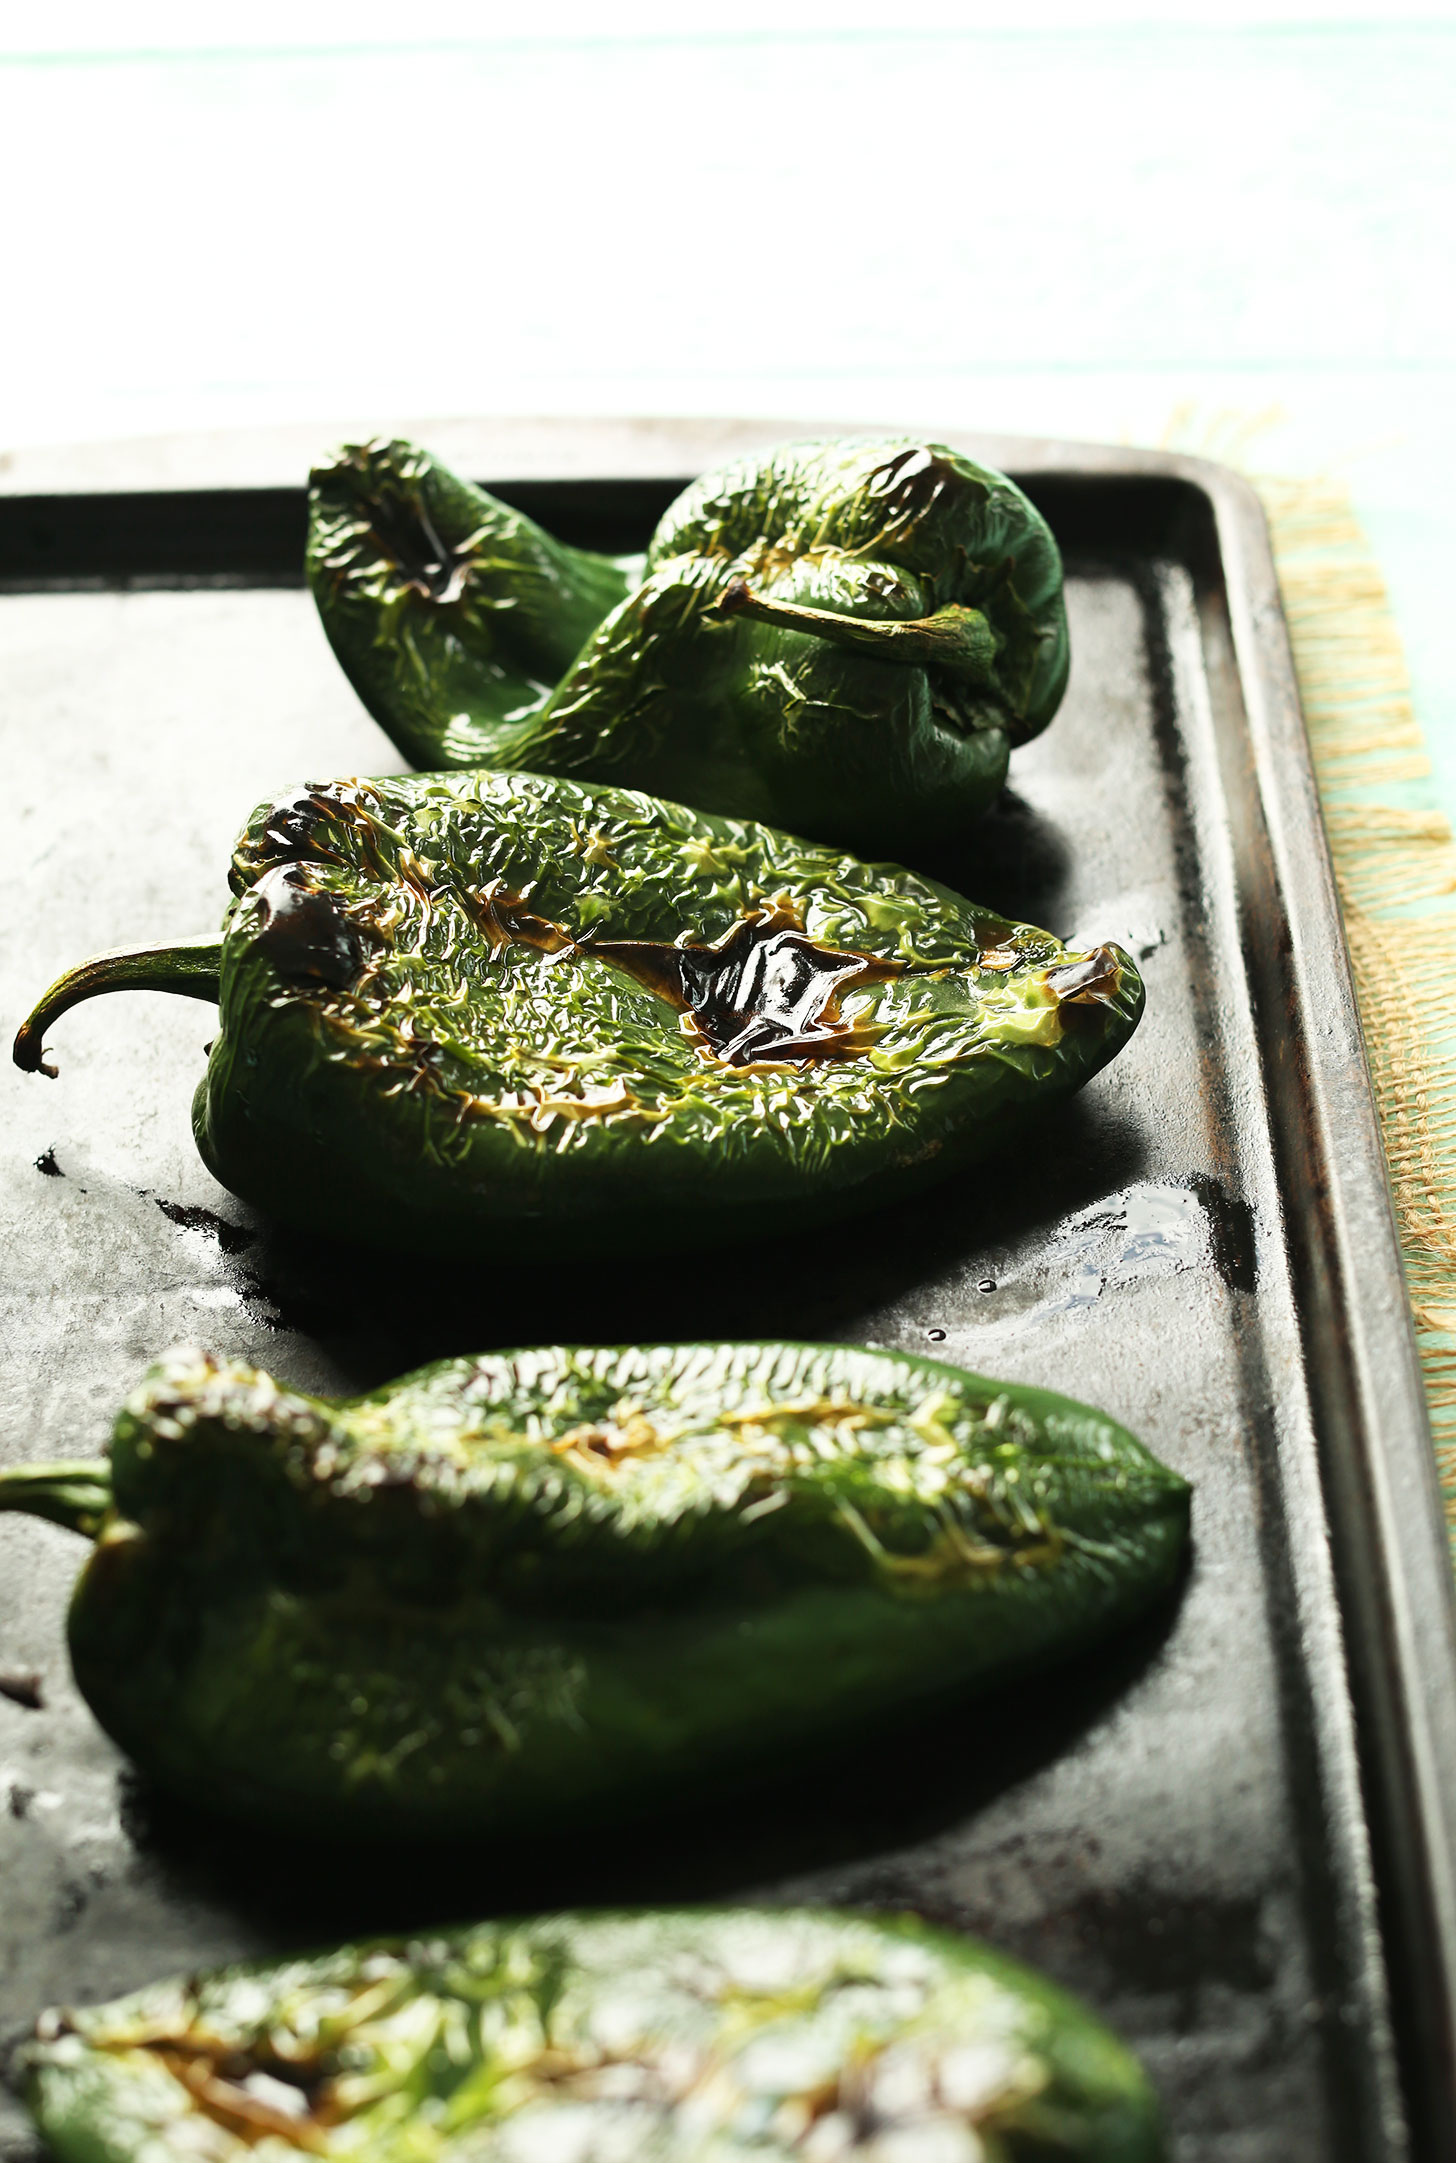 Baking Sheet With Freshly Roasted Poblano Peppers Ready To Be Stuffed For A Plant Based